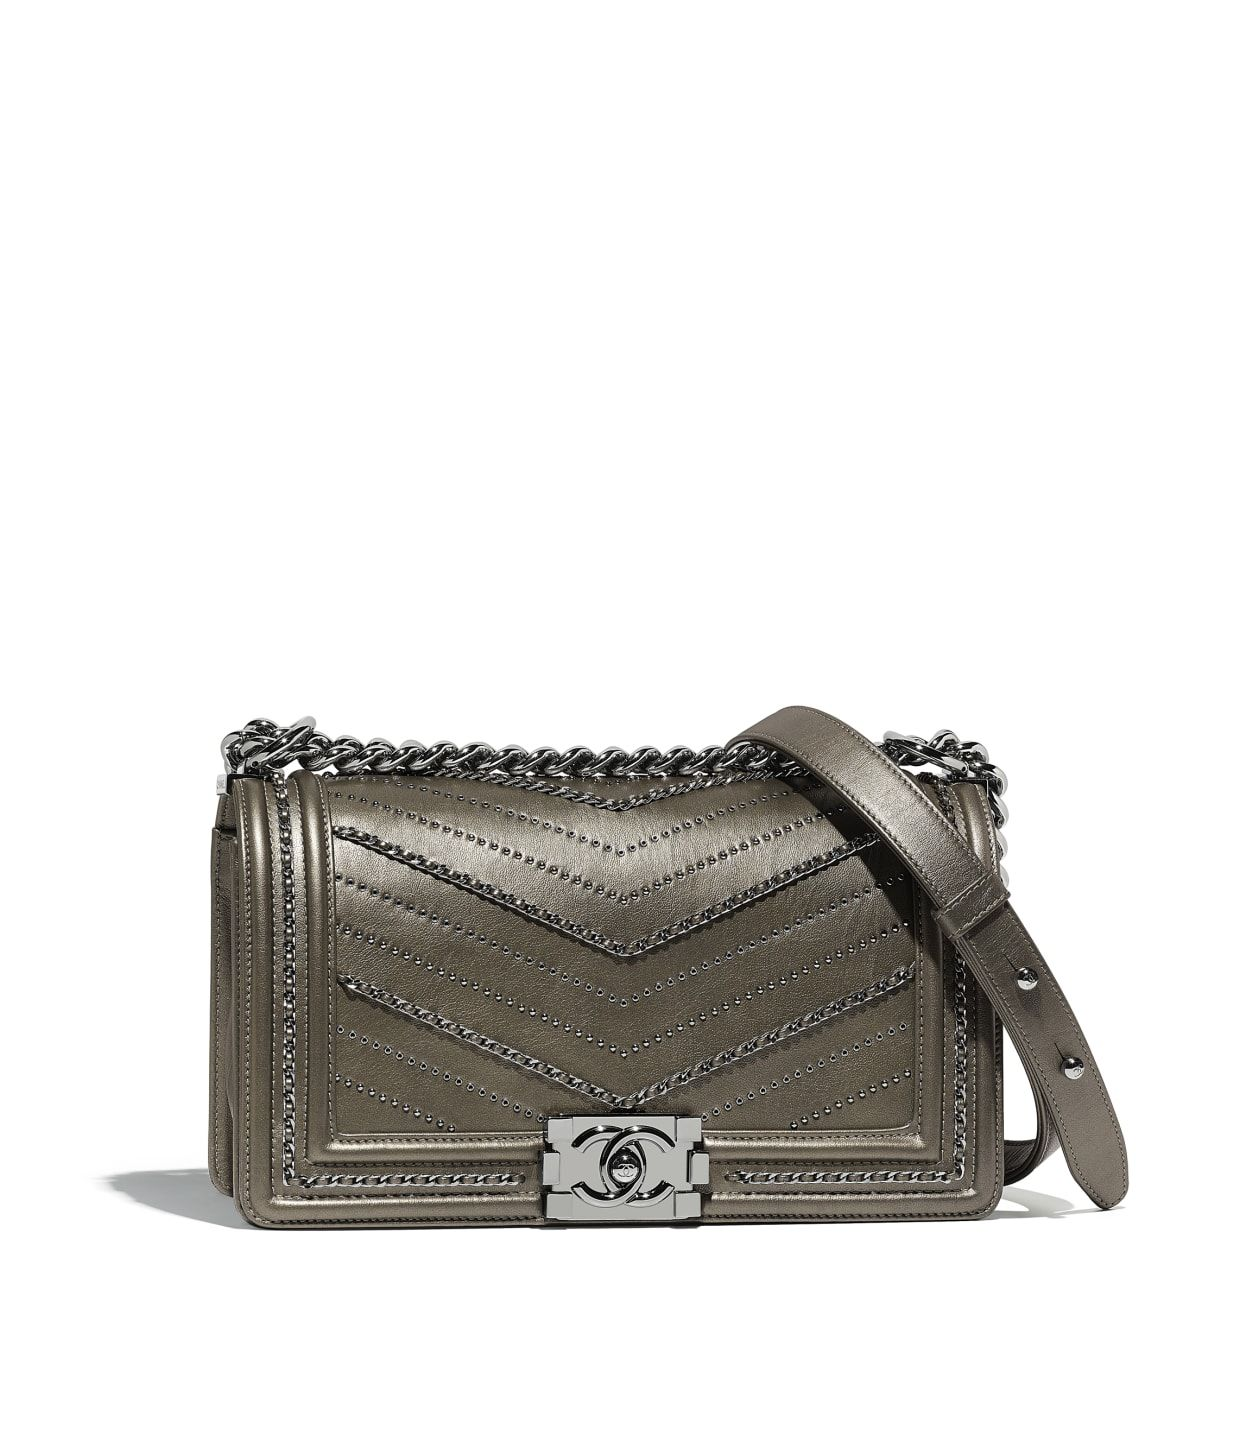 cf9c5eeff585 Discover the CHANEL Metallic Crumpled Calfskin & Ruthenium-Finish Metal  Silver BOY CHANEL Handbag, and explore the artistry and craftsmanship of the  House ...